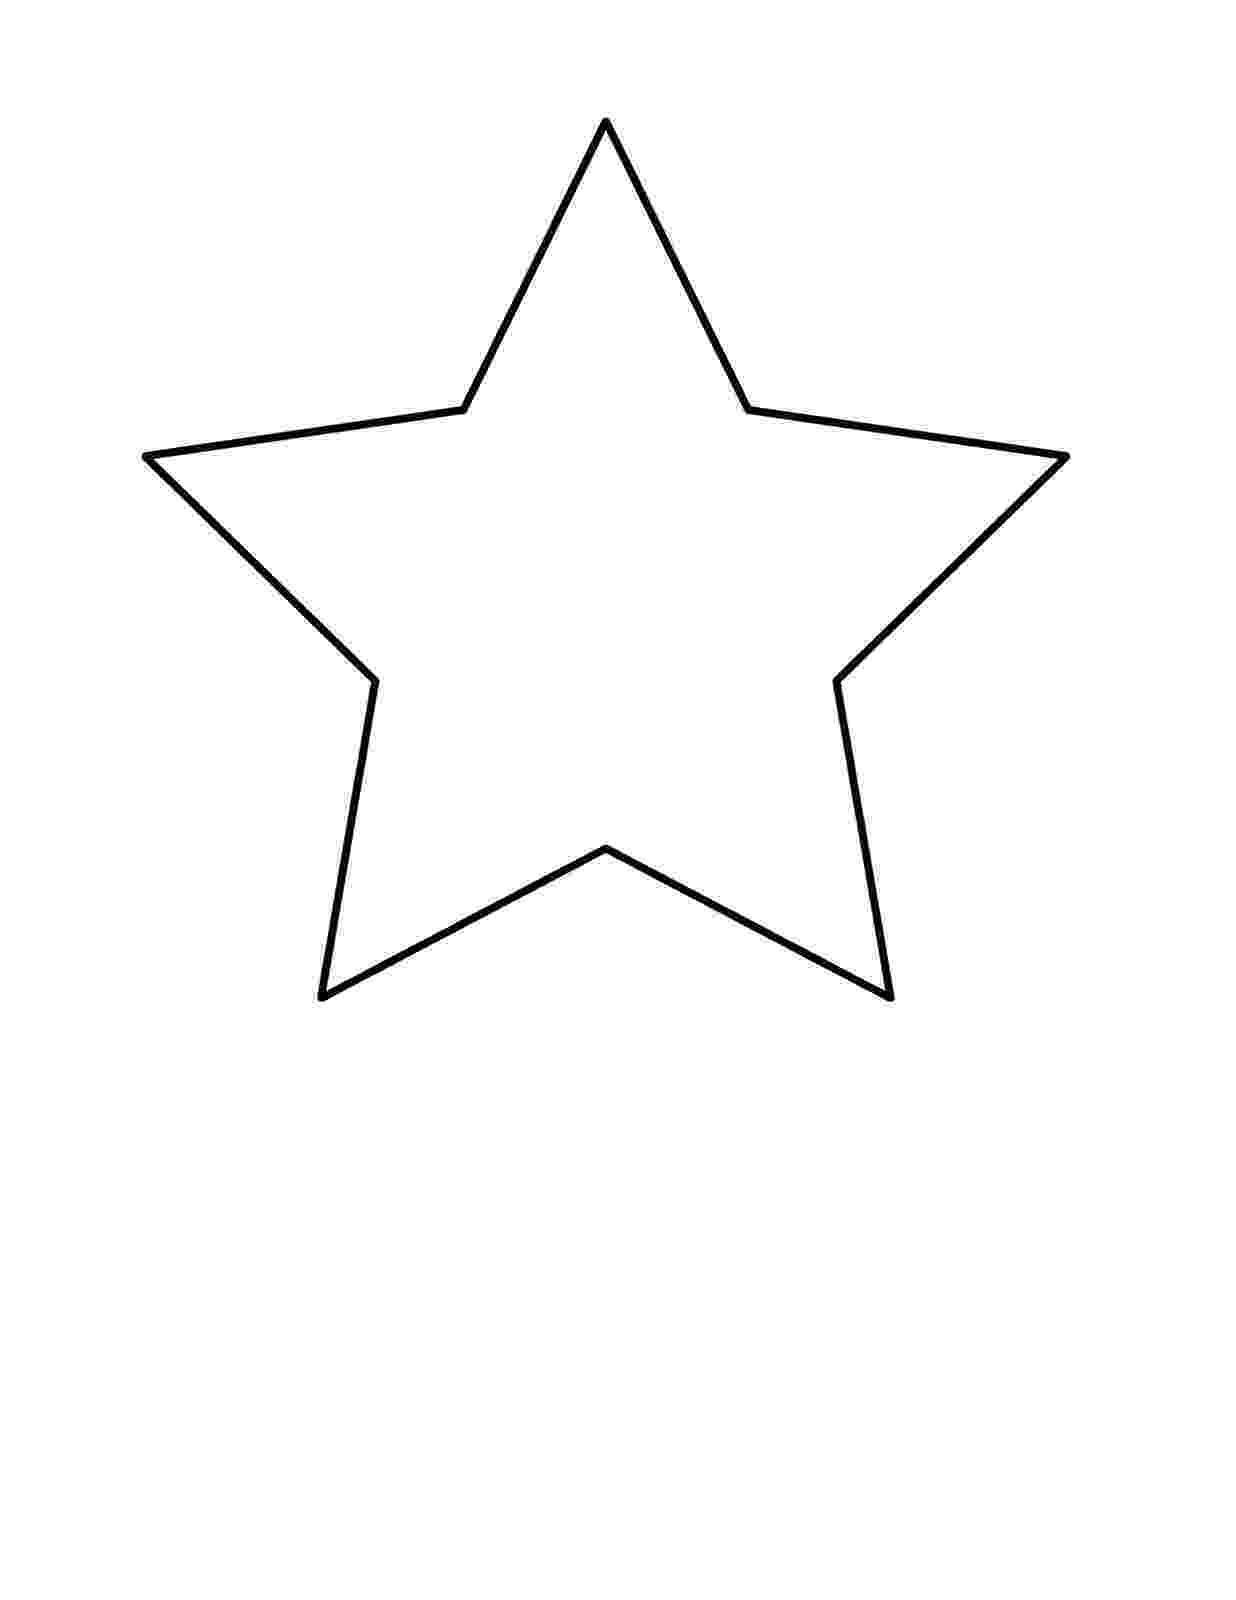 coloring page stars 60 star coloring pages customize and print ad free pdf page stars coloring